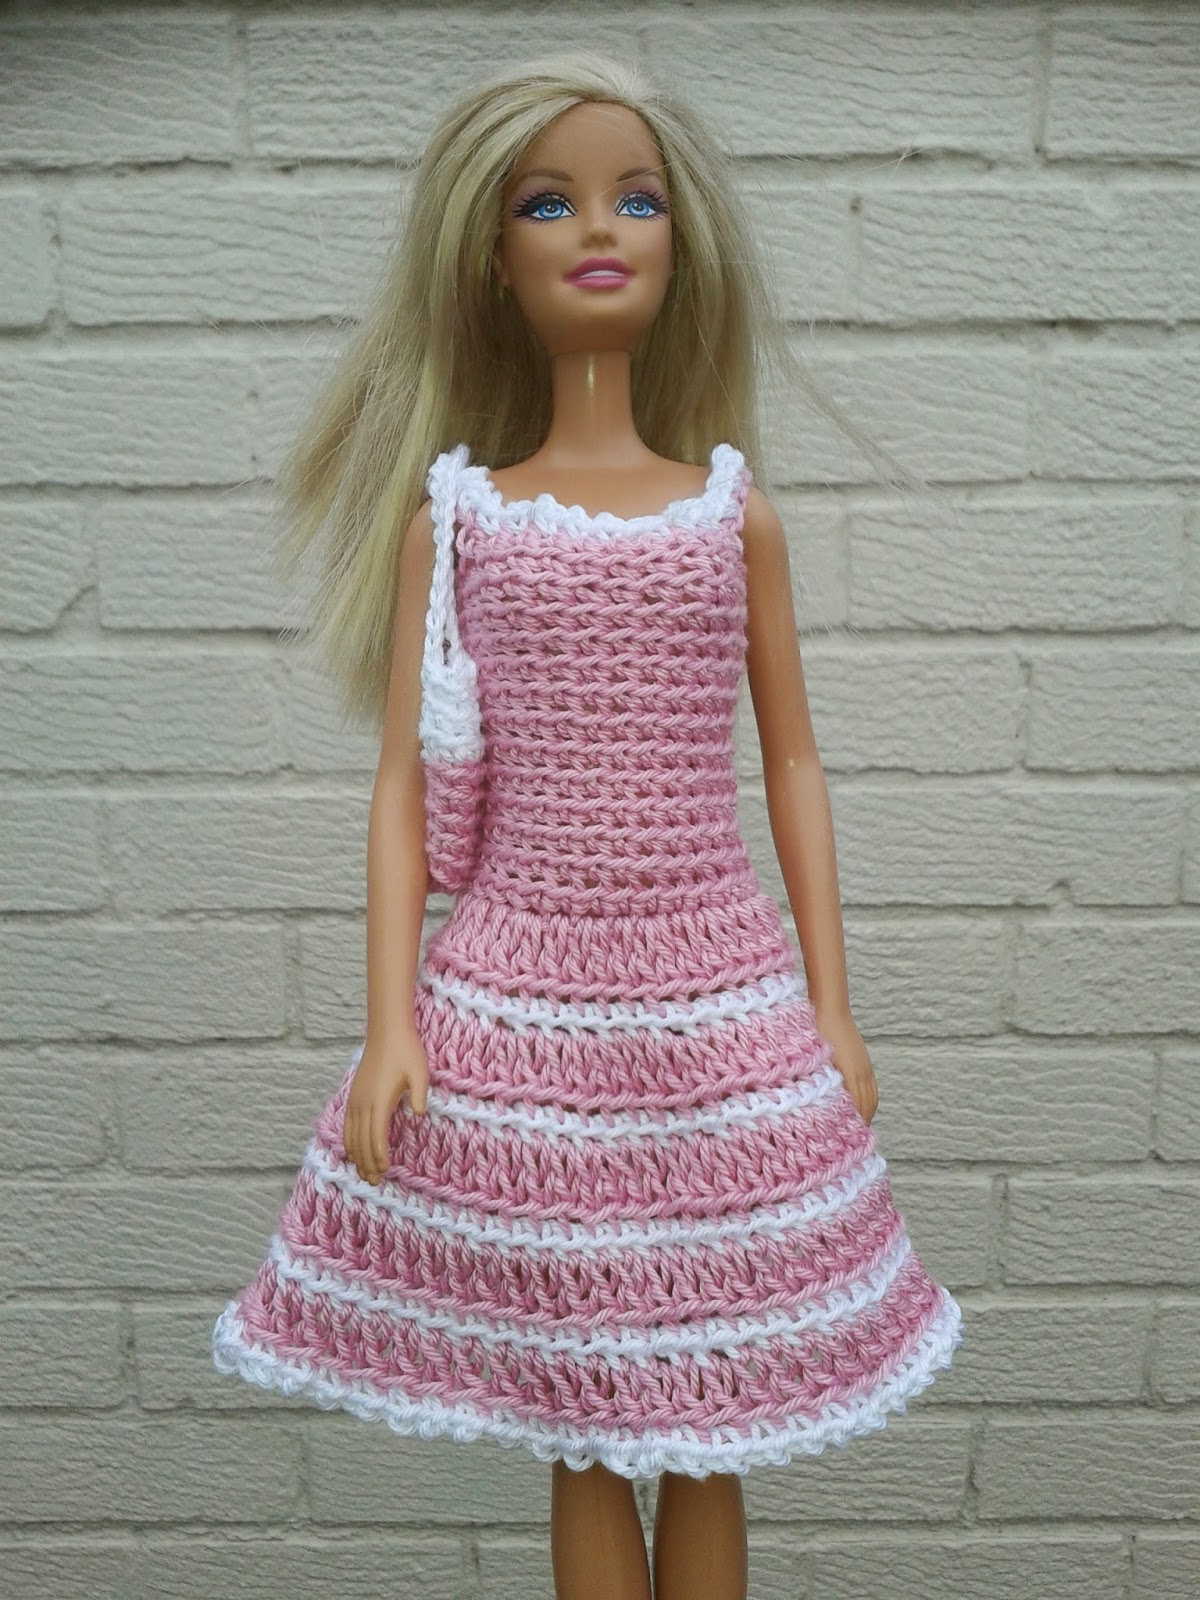 Shop for Barbie dolls and toys! Find a variety of dolls, fashions, accessories and playsets to tell endless stories!